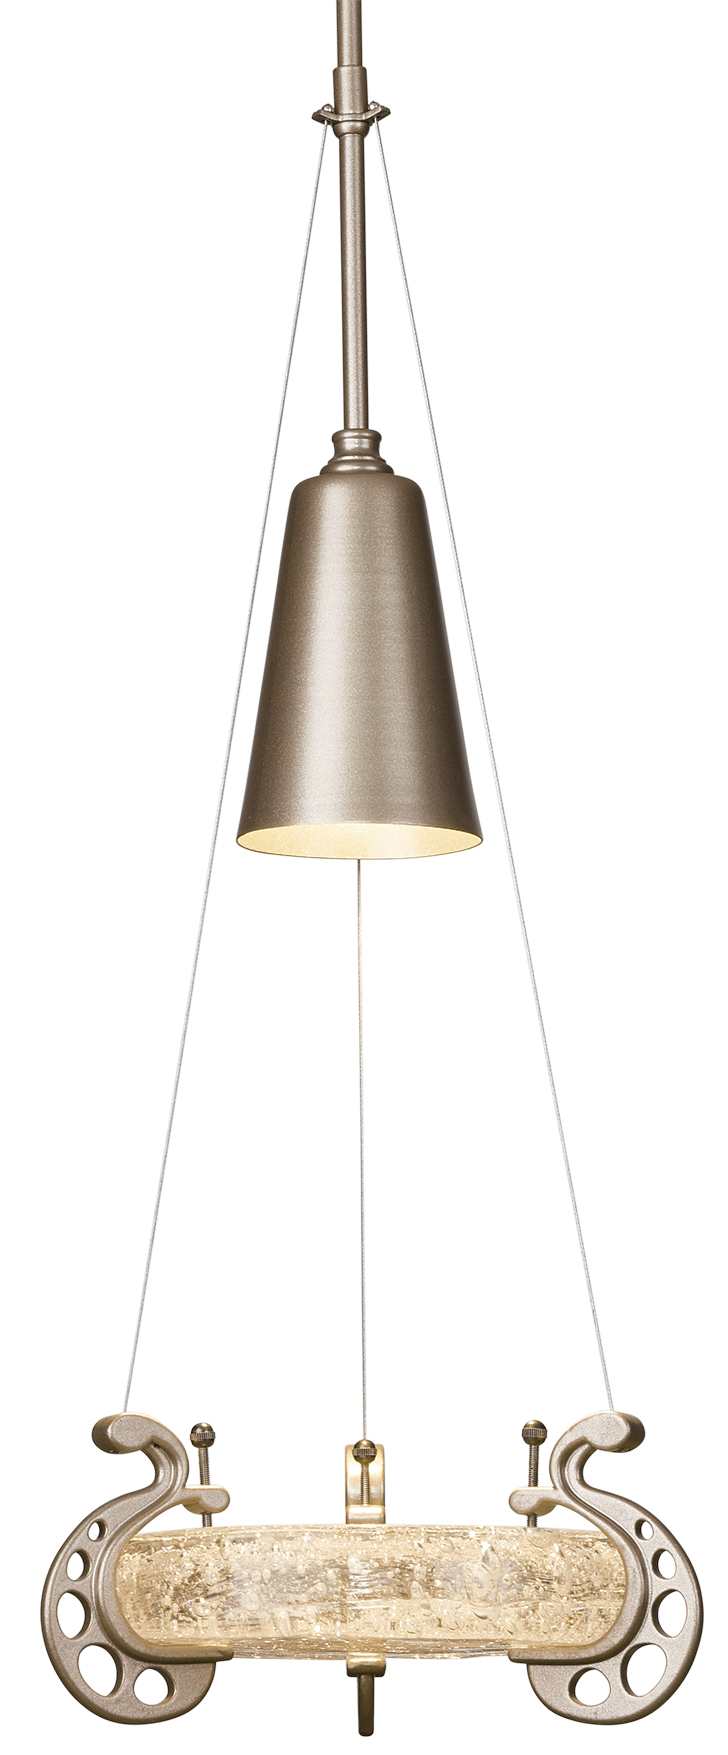 Pendant by hubbardton forge 187510 1000 lens pendant by hubbardton forge 187510 1000 aloadofball Images